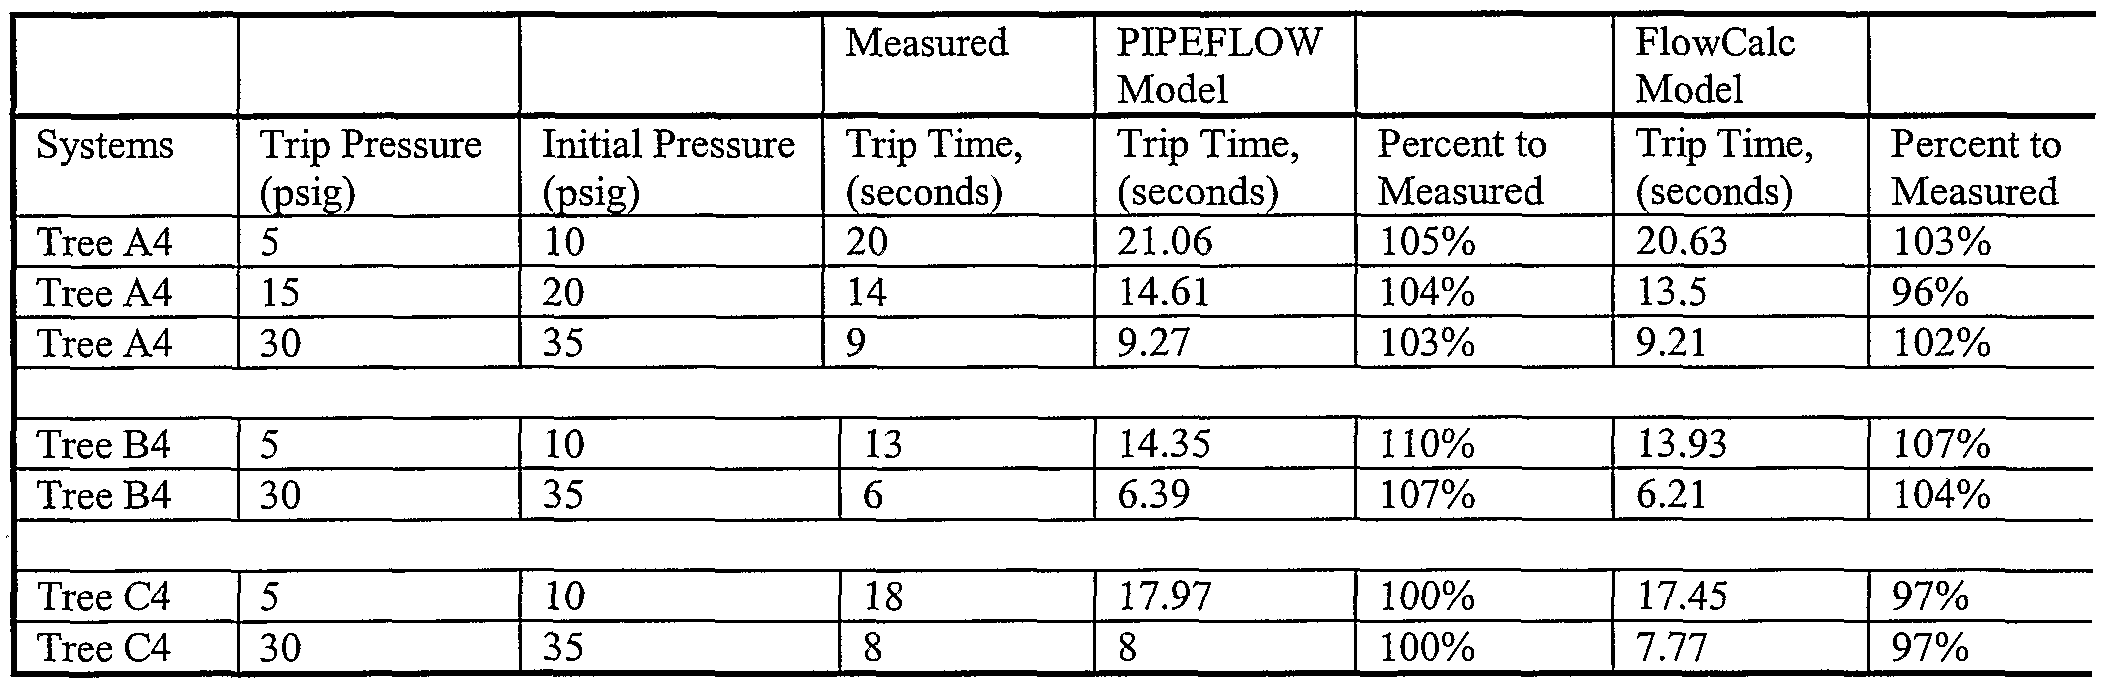 Ep1514175a4 system and method for evaluation of fluid flow in a figure imgf0000540001 nvjuhfo Image collections